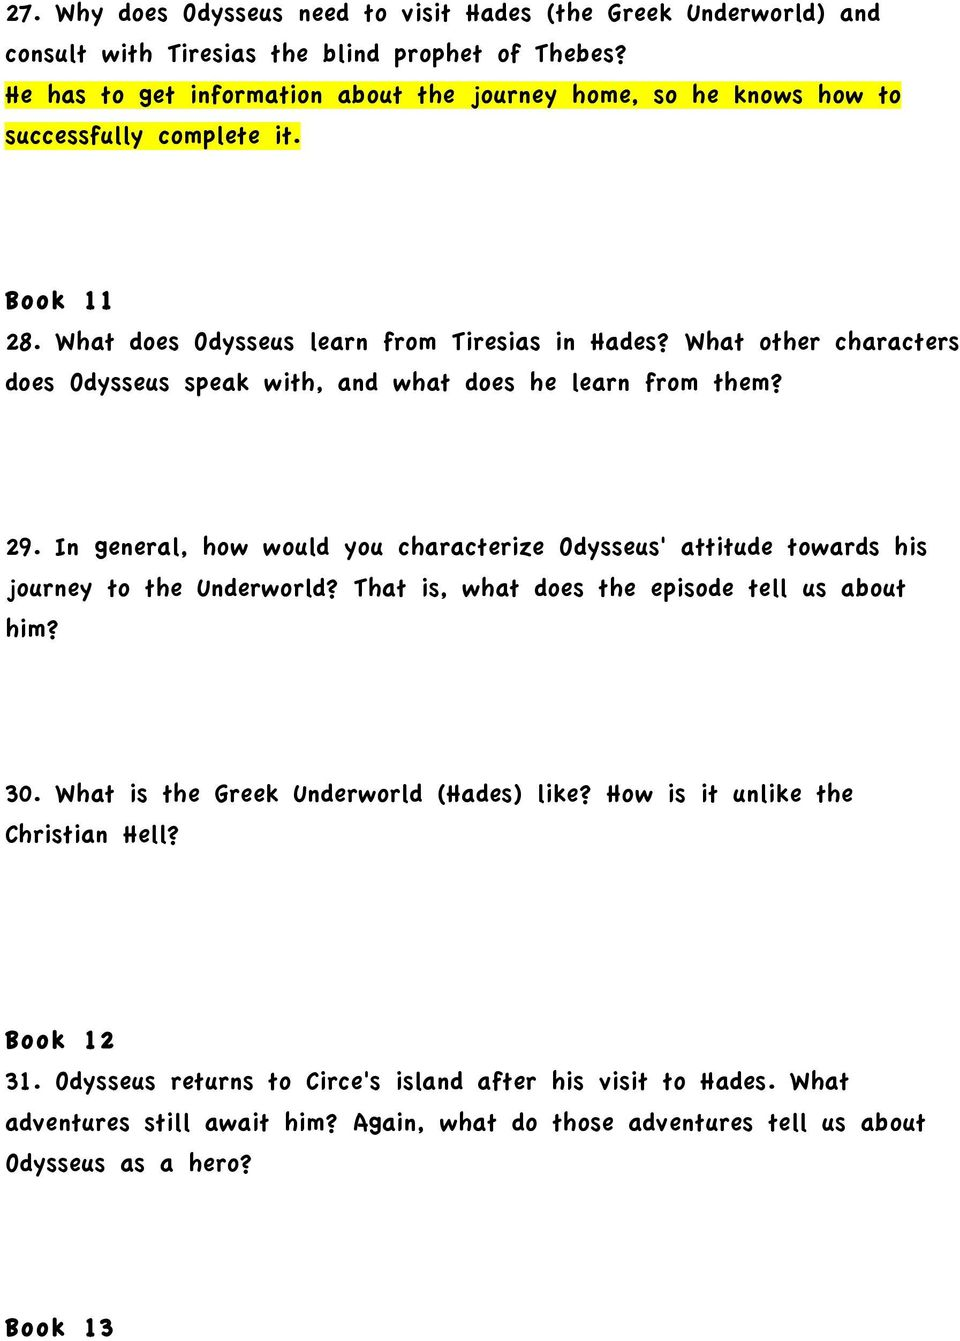 an analysis of the main character in the odyssey Characters in the odyssey characters marked with are recurring characters who play significant roles c make a visual summary of two key events from the assigned reading odyssey study guide books 1-8docx.